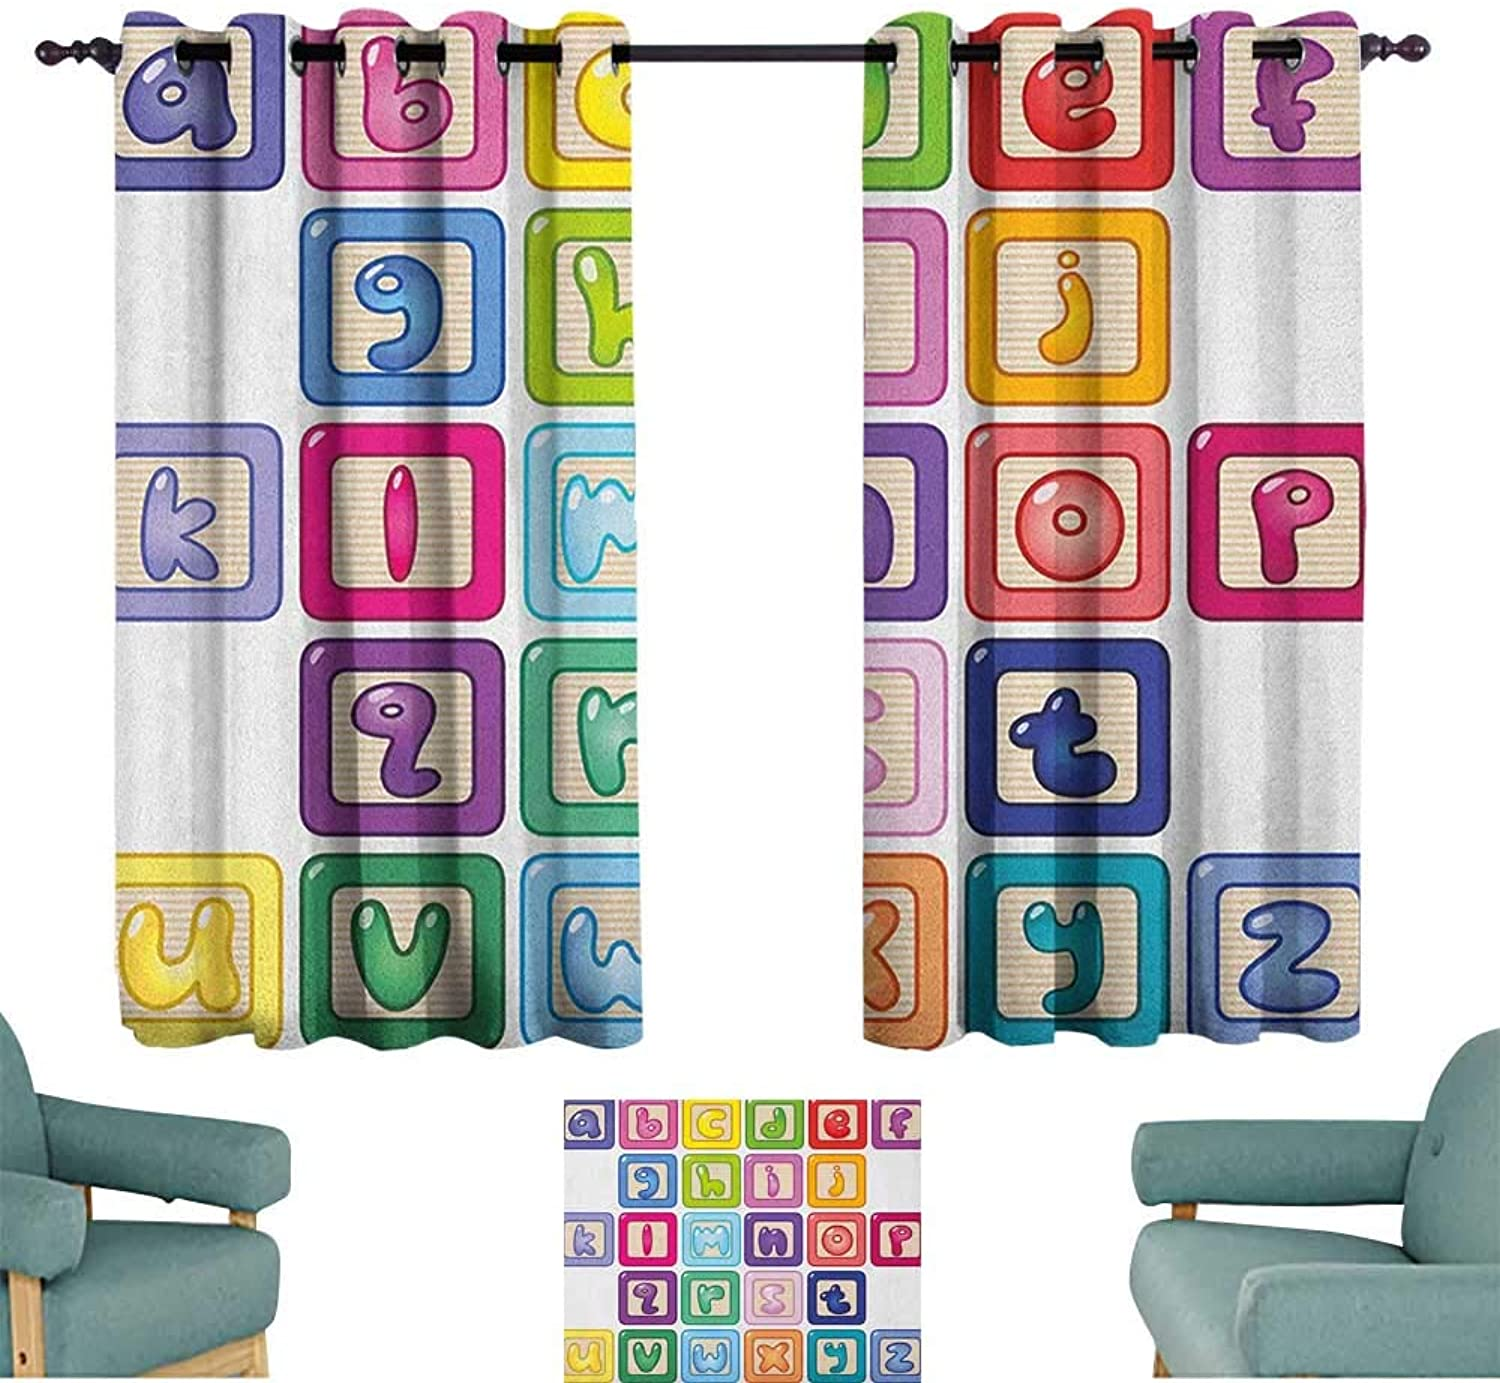 Alisoso Educational,Boys Bedroom Backout Curtains colorful Lower Case Alphabet Blocks Cute Kids Font ABC Cartoon Style Typography 42 X54  Home Decor Fashion Backout Draperies